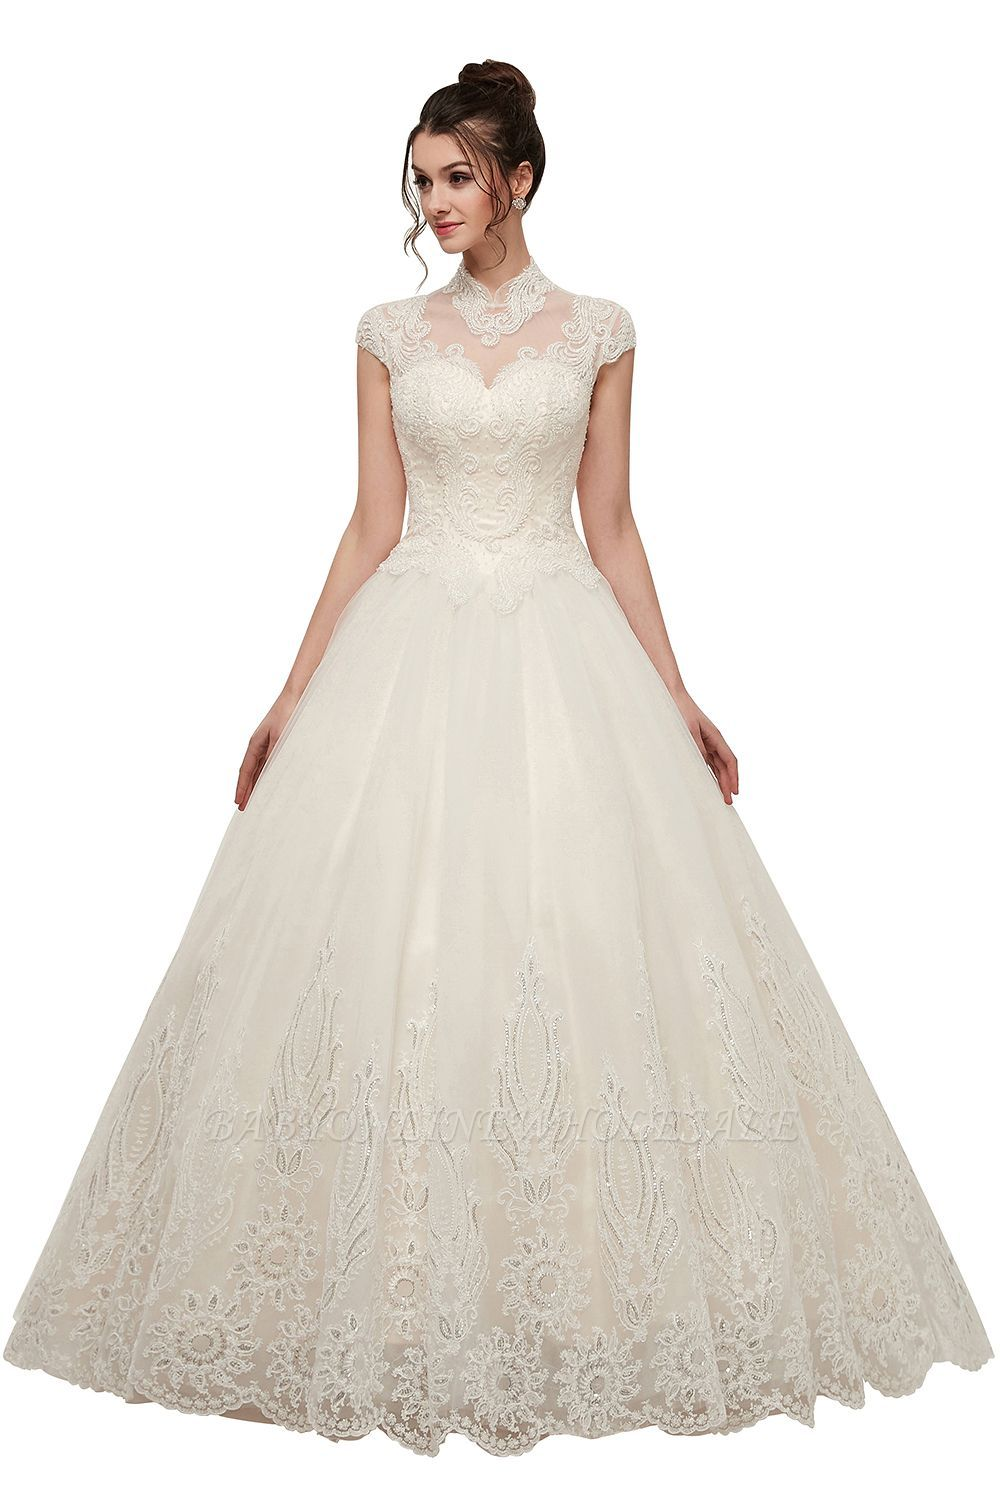 Yolande A Line High Neck Short Sleeves Long Lace Appliques